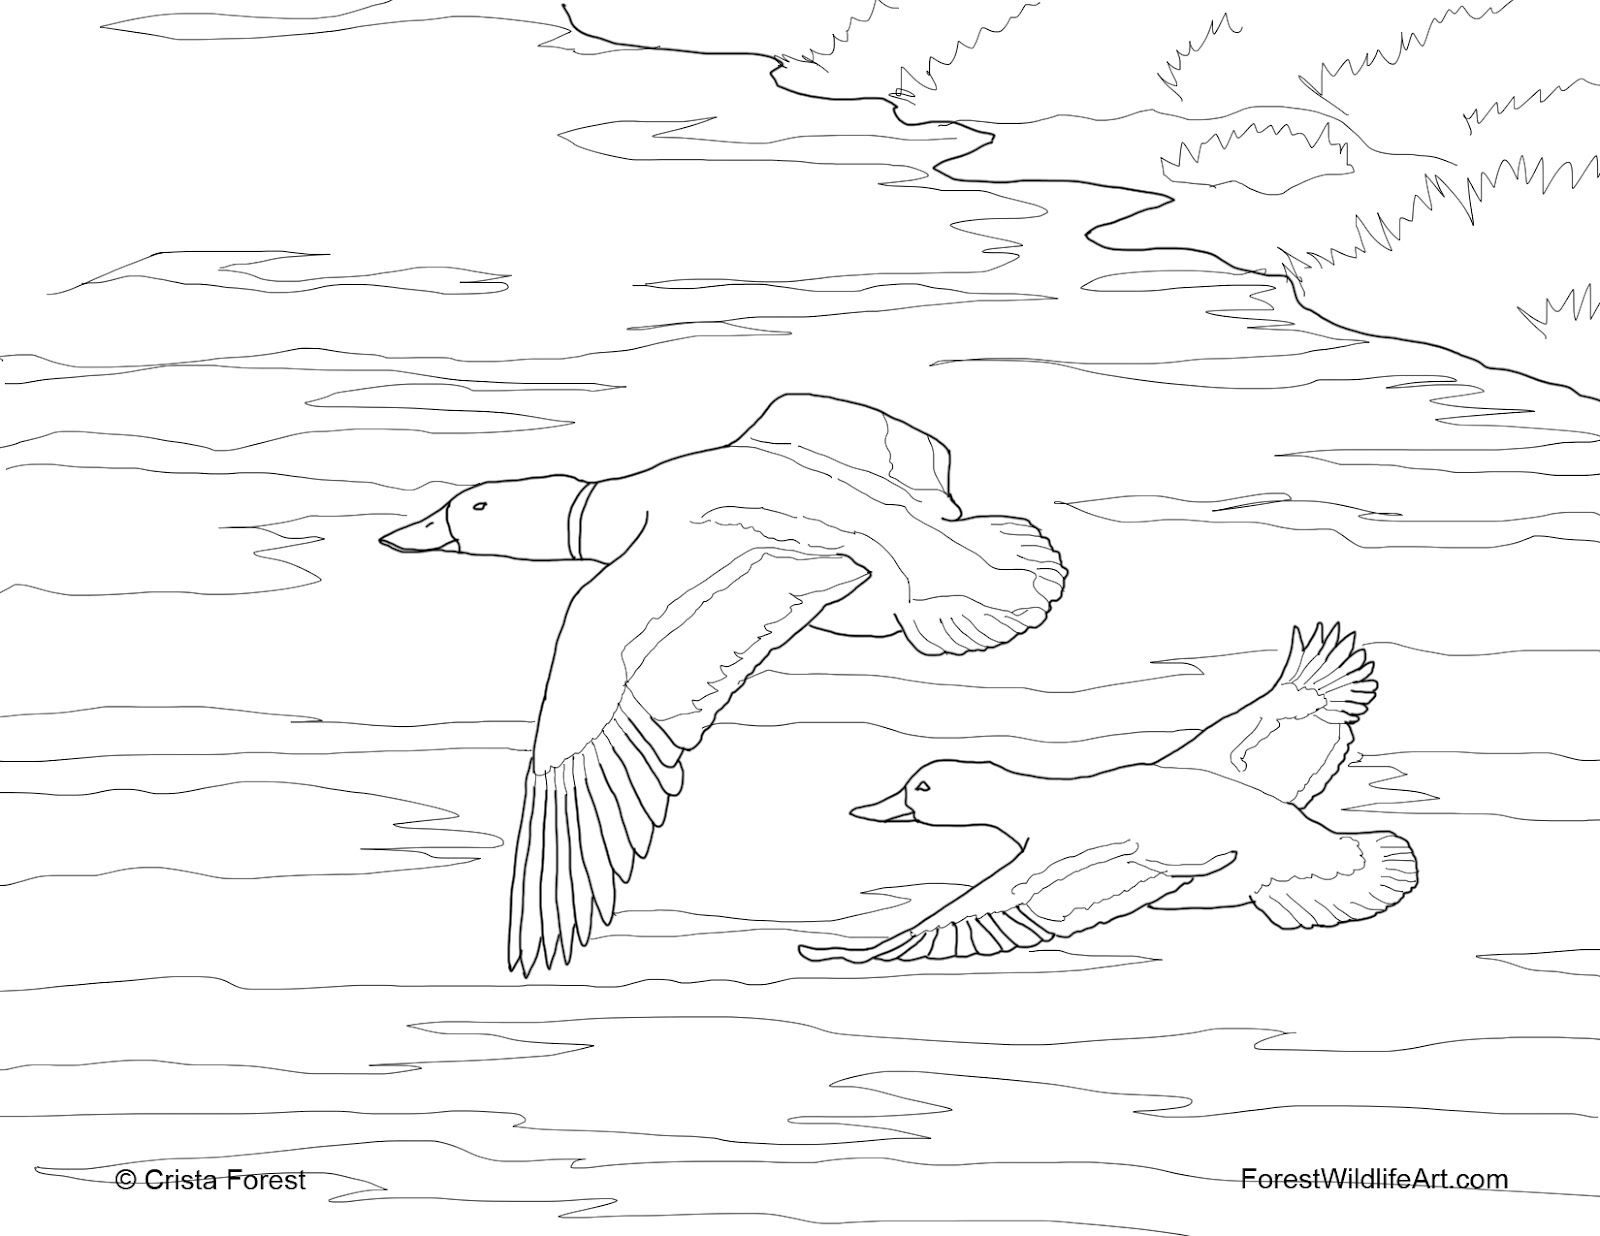 Duck Hunting Coloring Pages Coloring Page Hunting Coloring Pages Prints And Colors Coloring Pages Animal Coloring Pages Coloring Book Pages